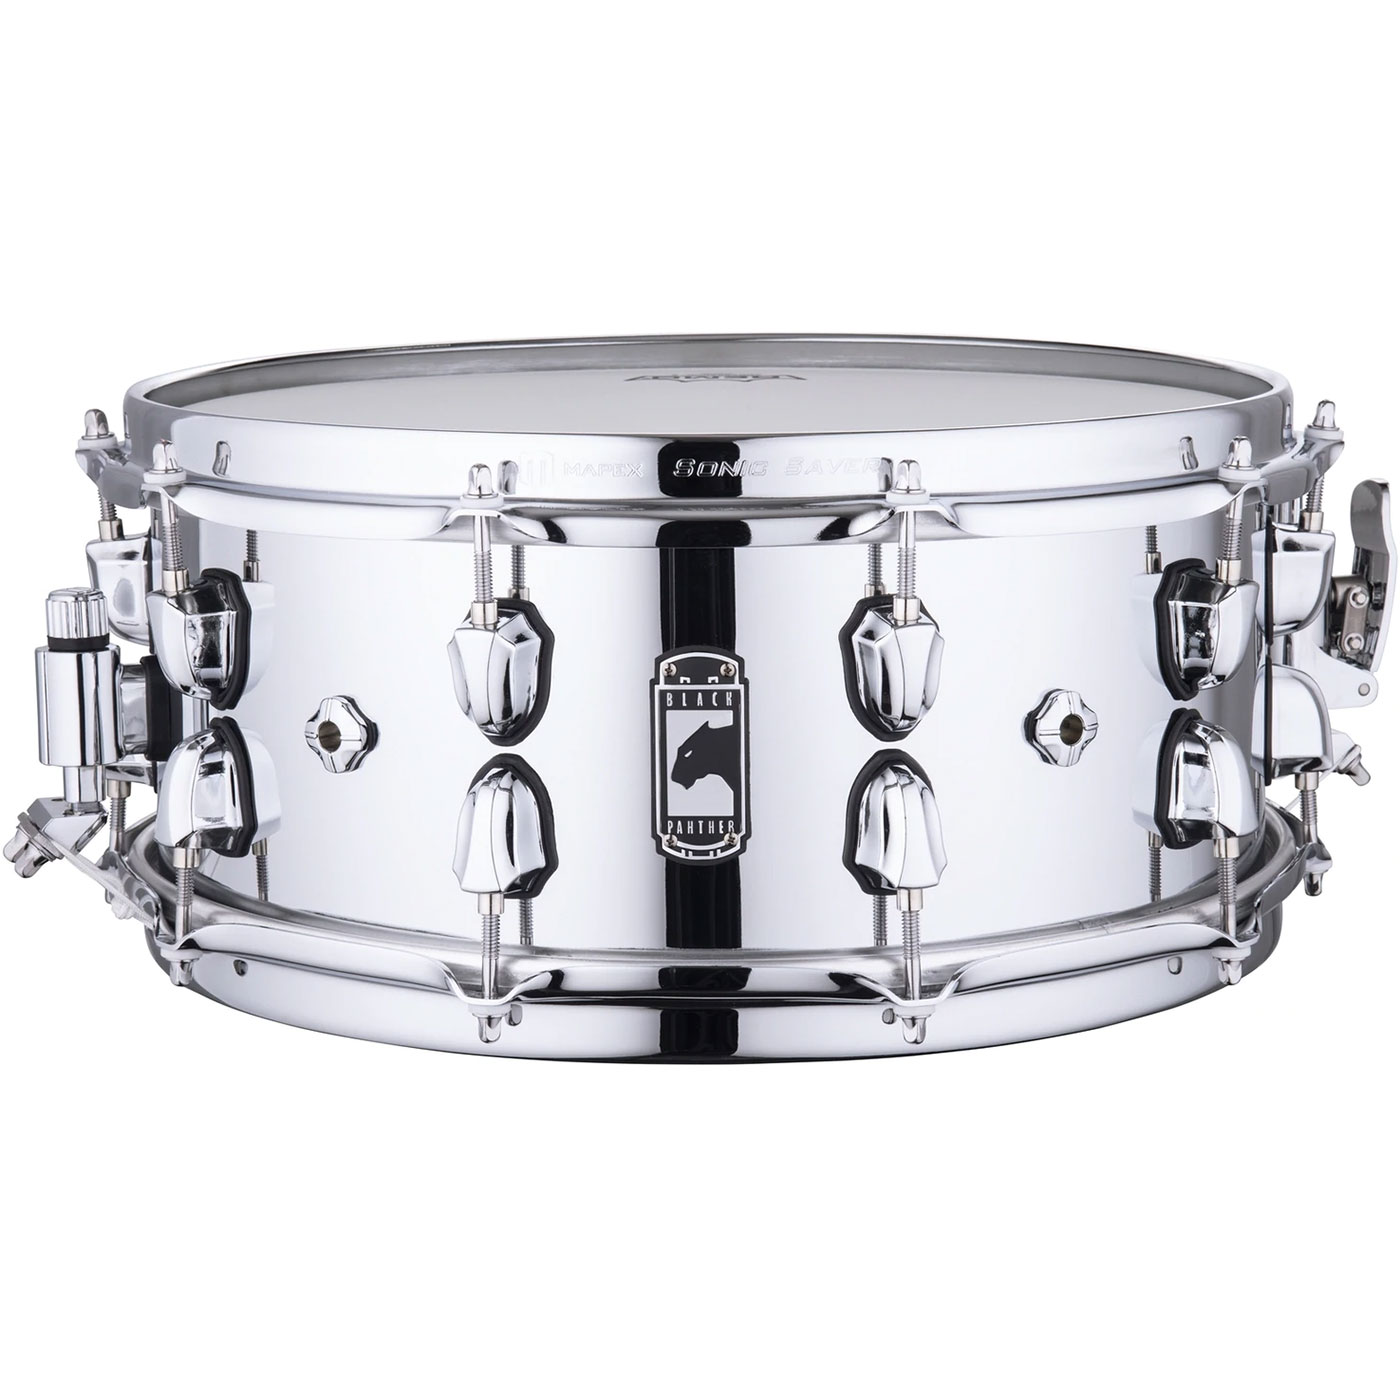 """Mapex 14"""" x 6"""" Black Panther """"Cyrus"""" 1.0mm Seamed Steel Snare Drum"""